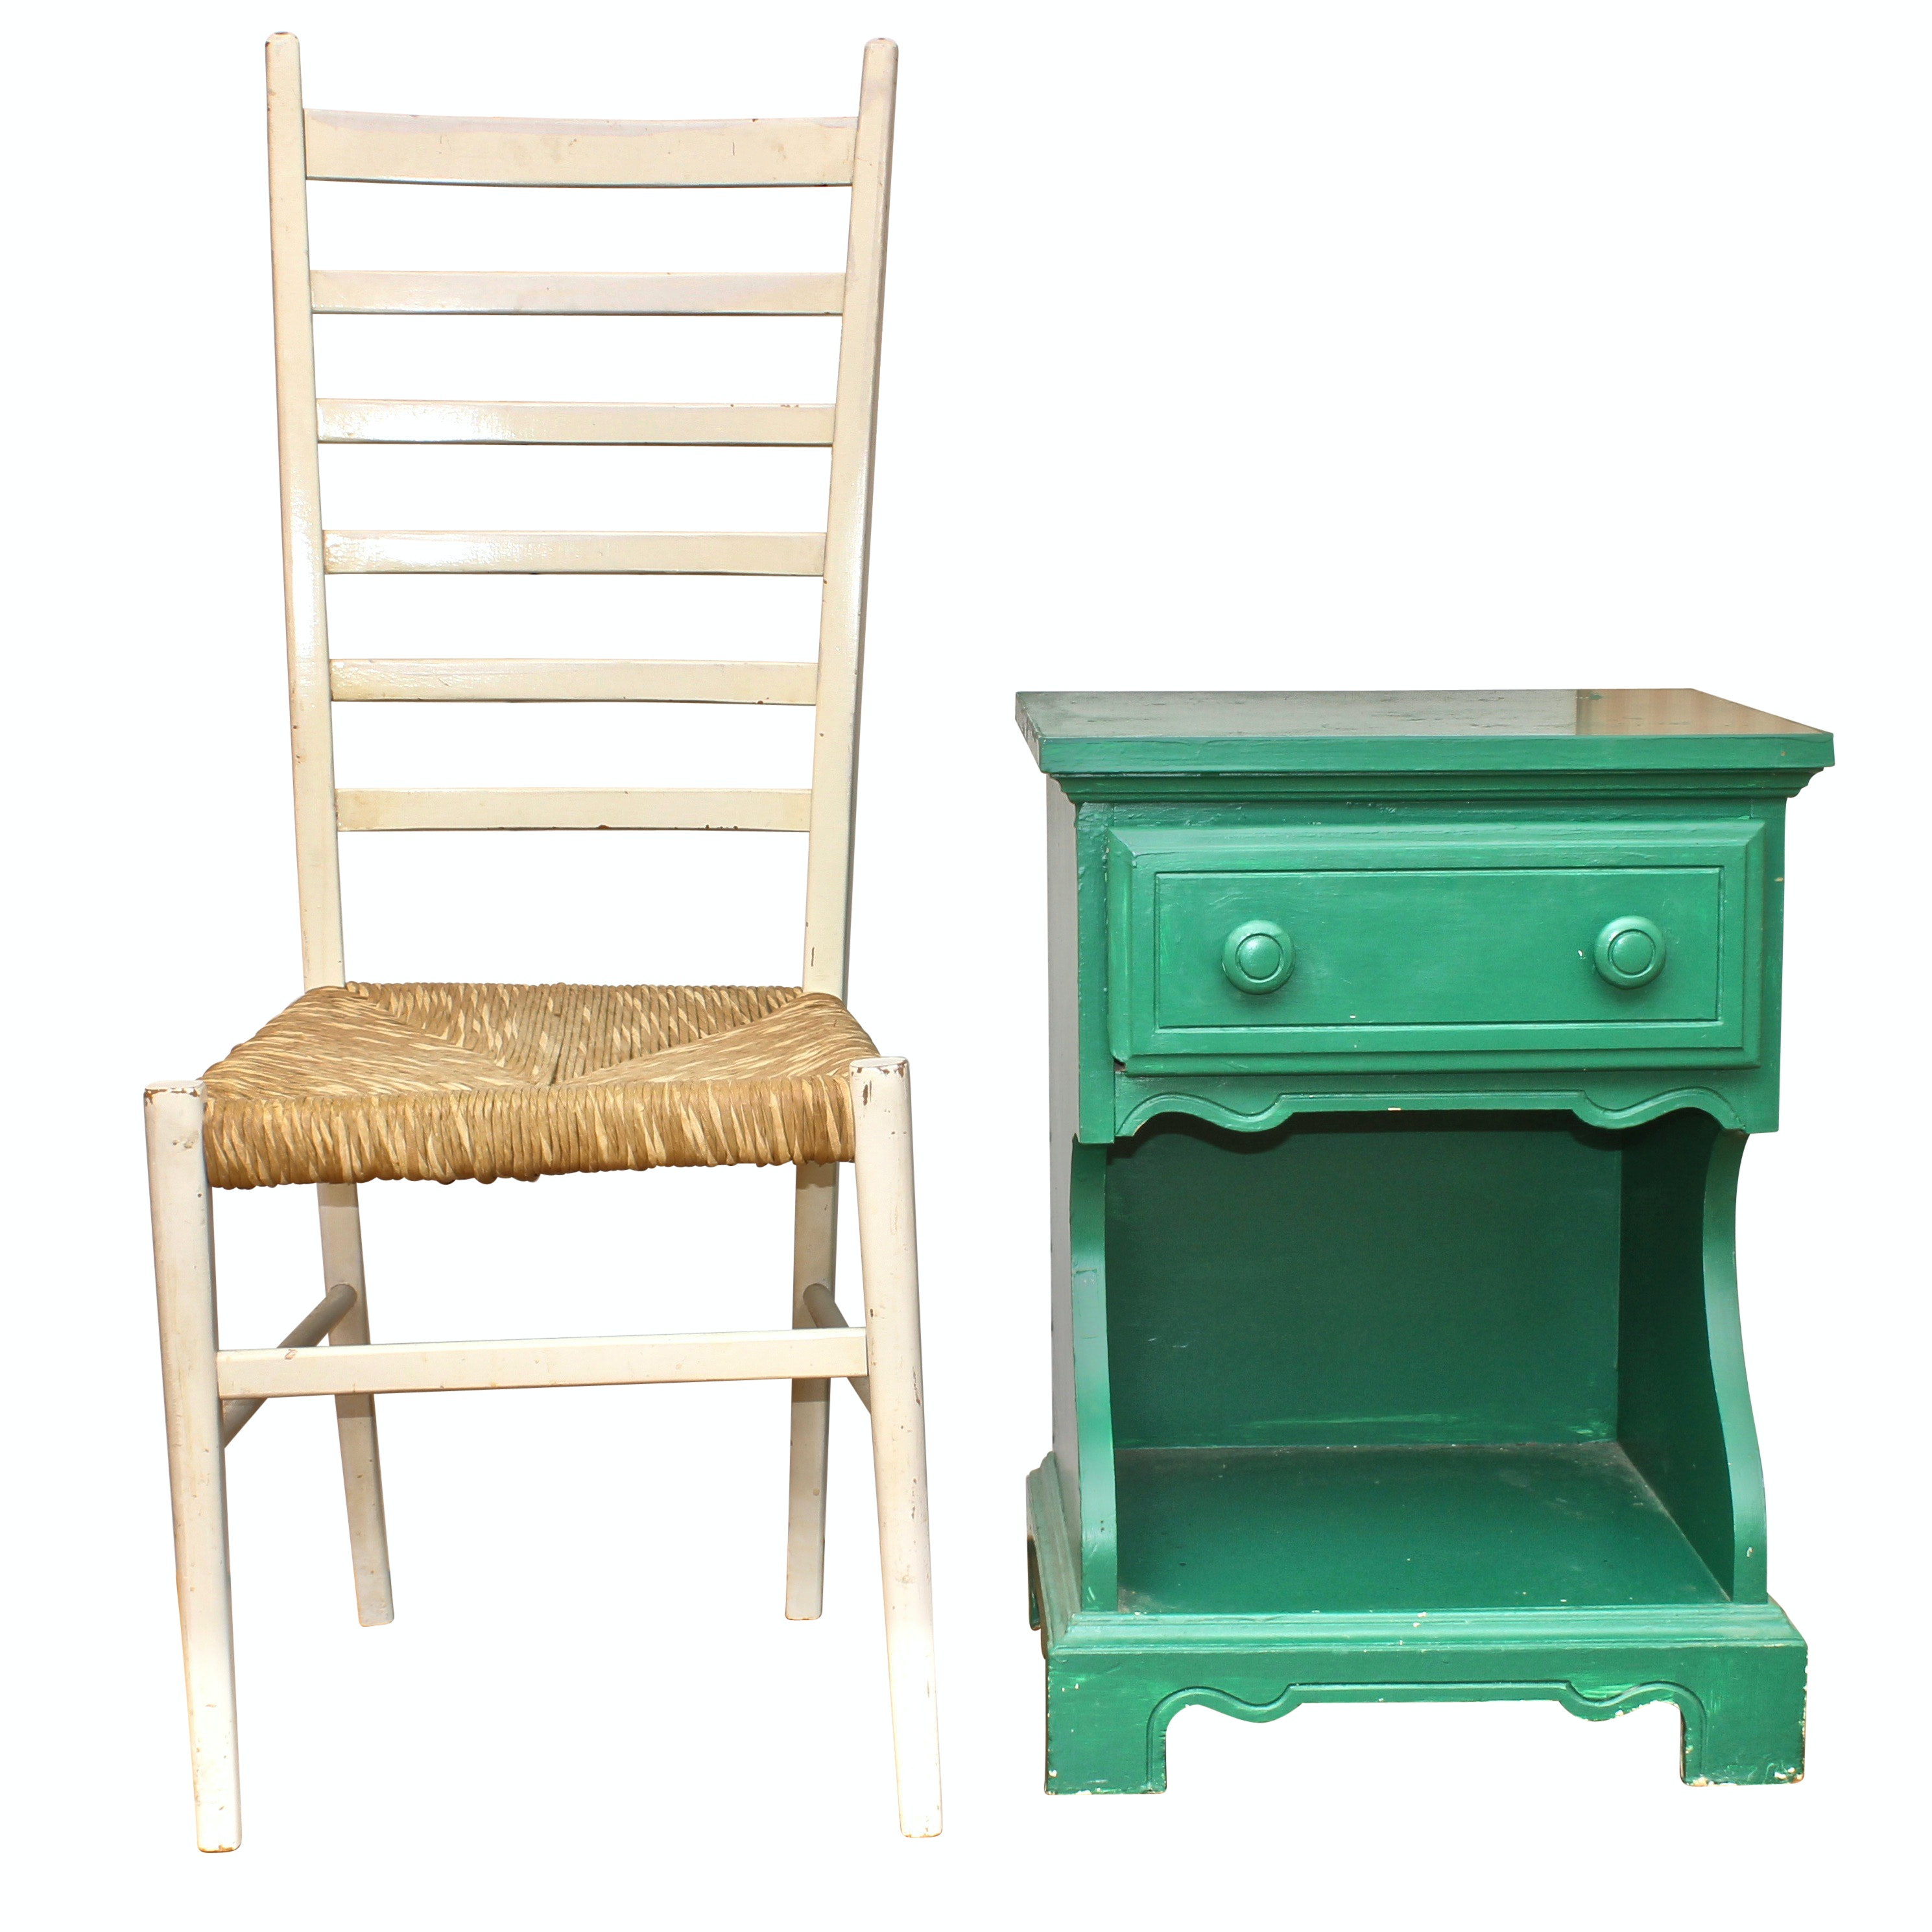 Green Painted Wood Side Table by Dixie and Ladder Back Chair, Late 20th Century